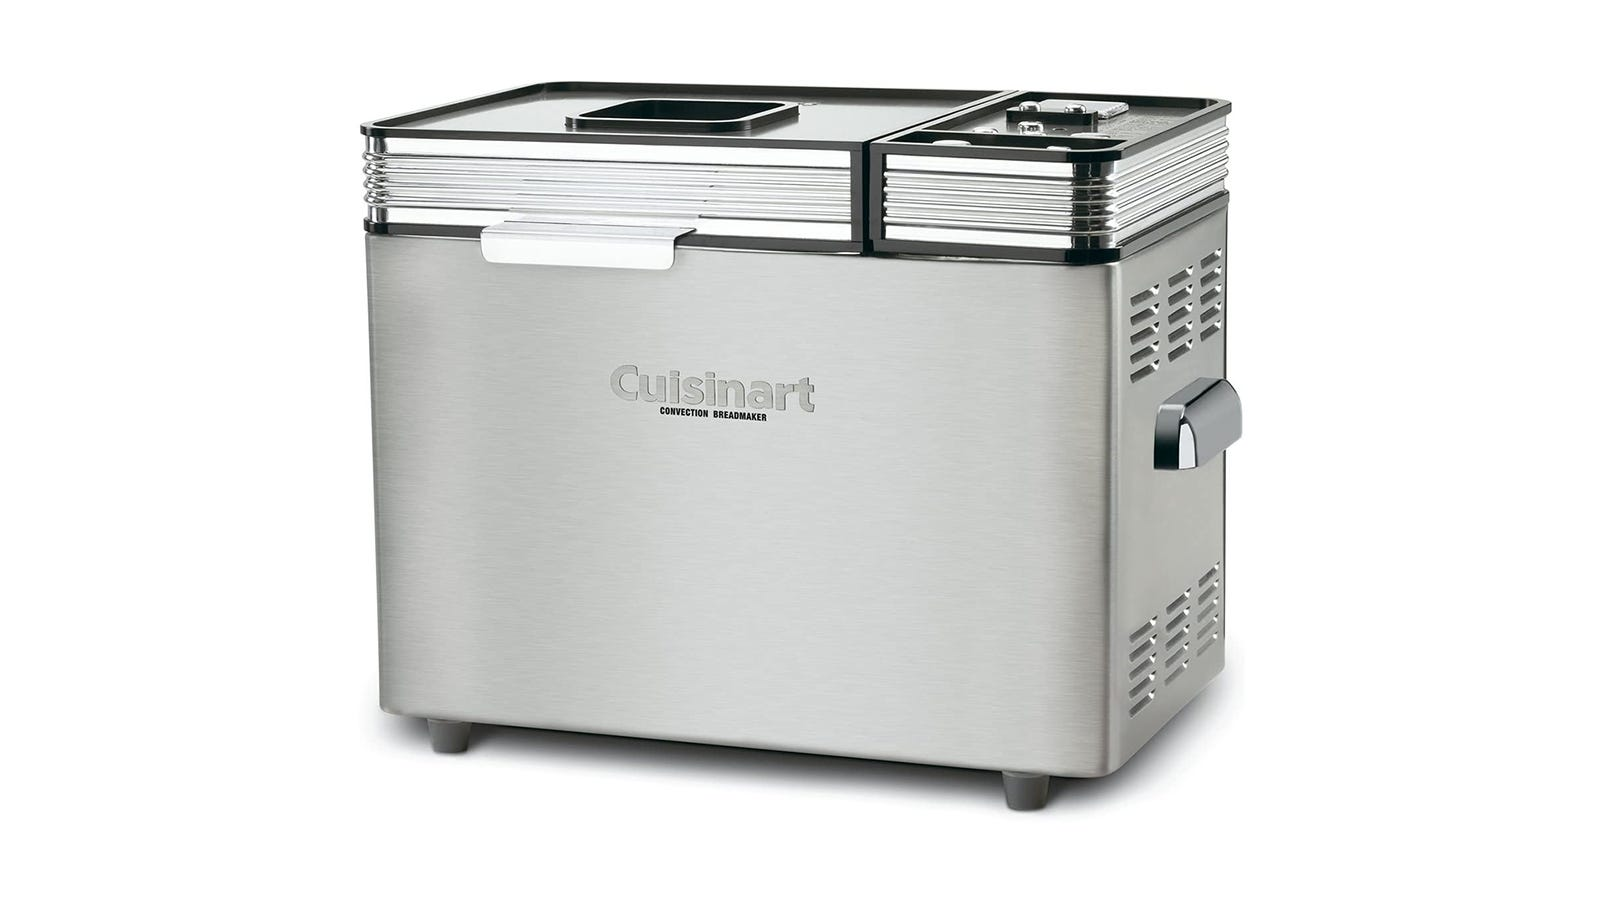 A rectangular silver bread maker viewed from the side